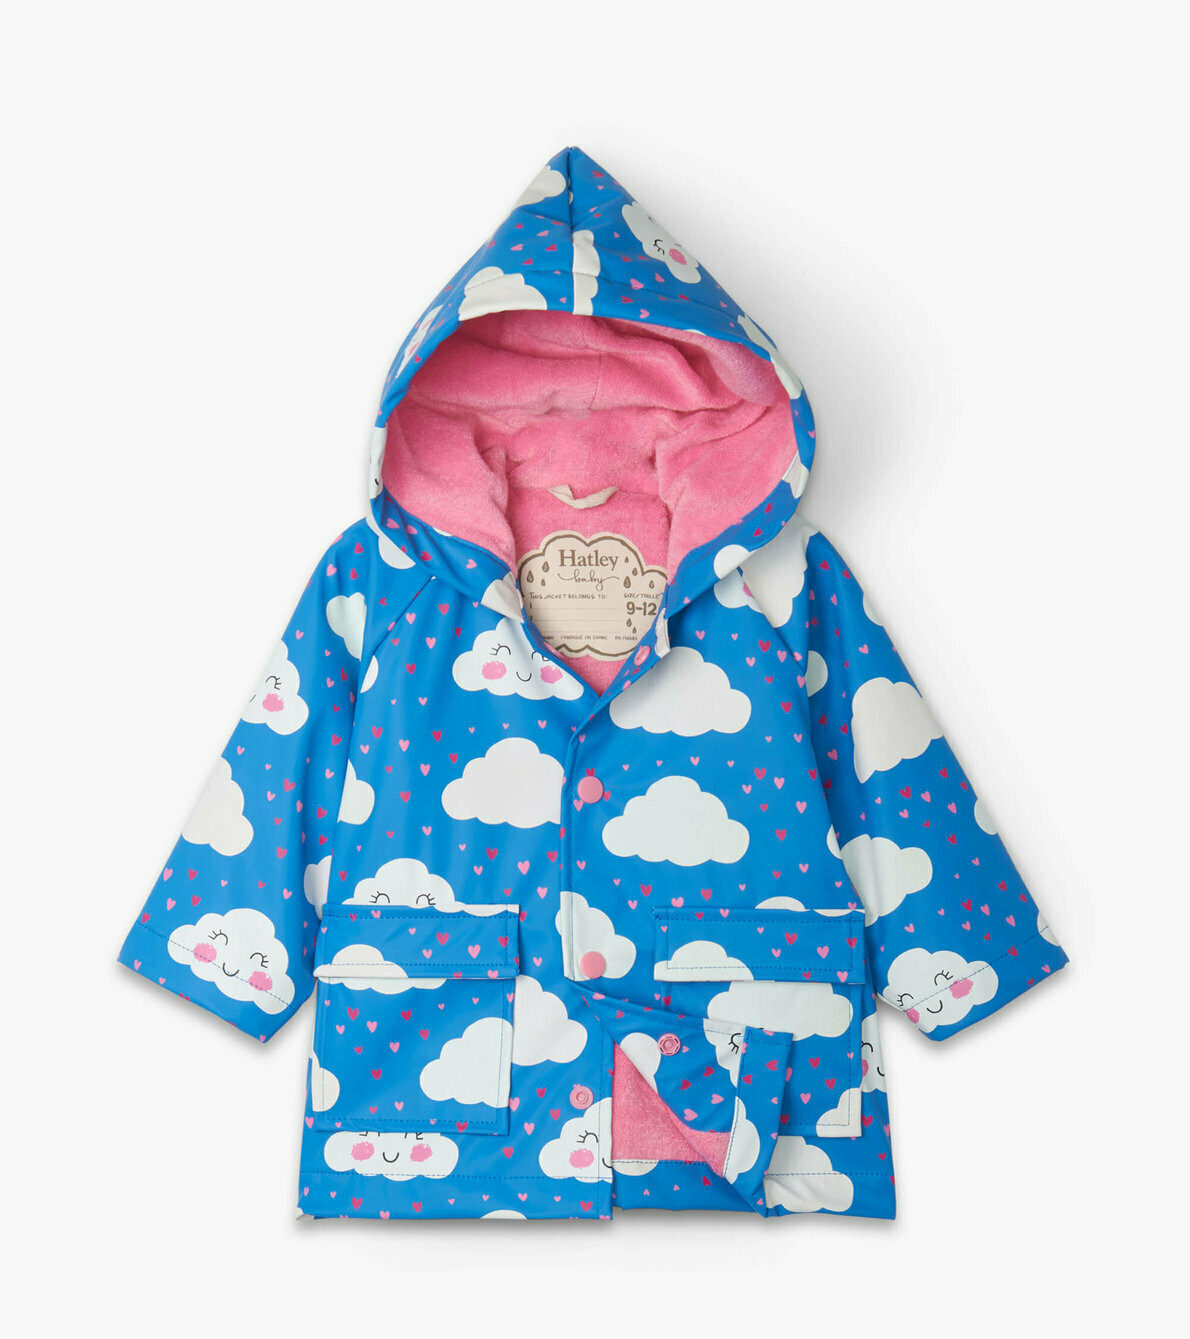 Hatley Cheerful Clouds Baby Colour Changeing Raincoat